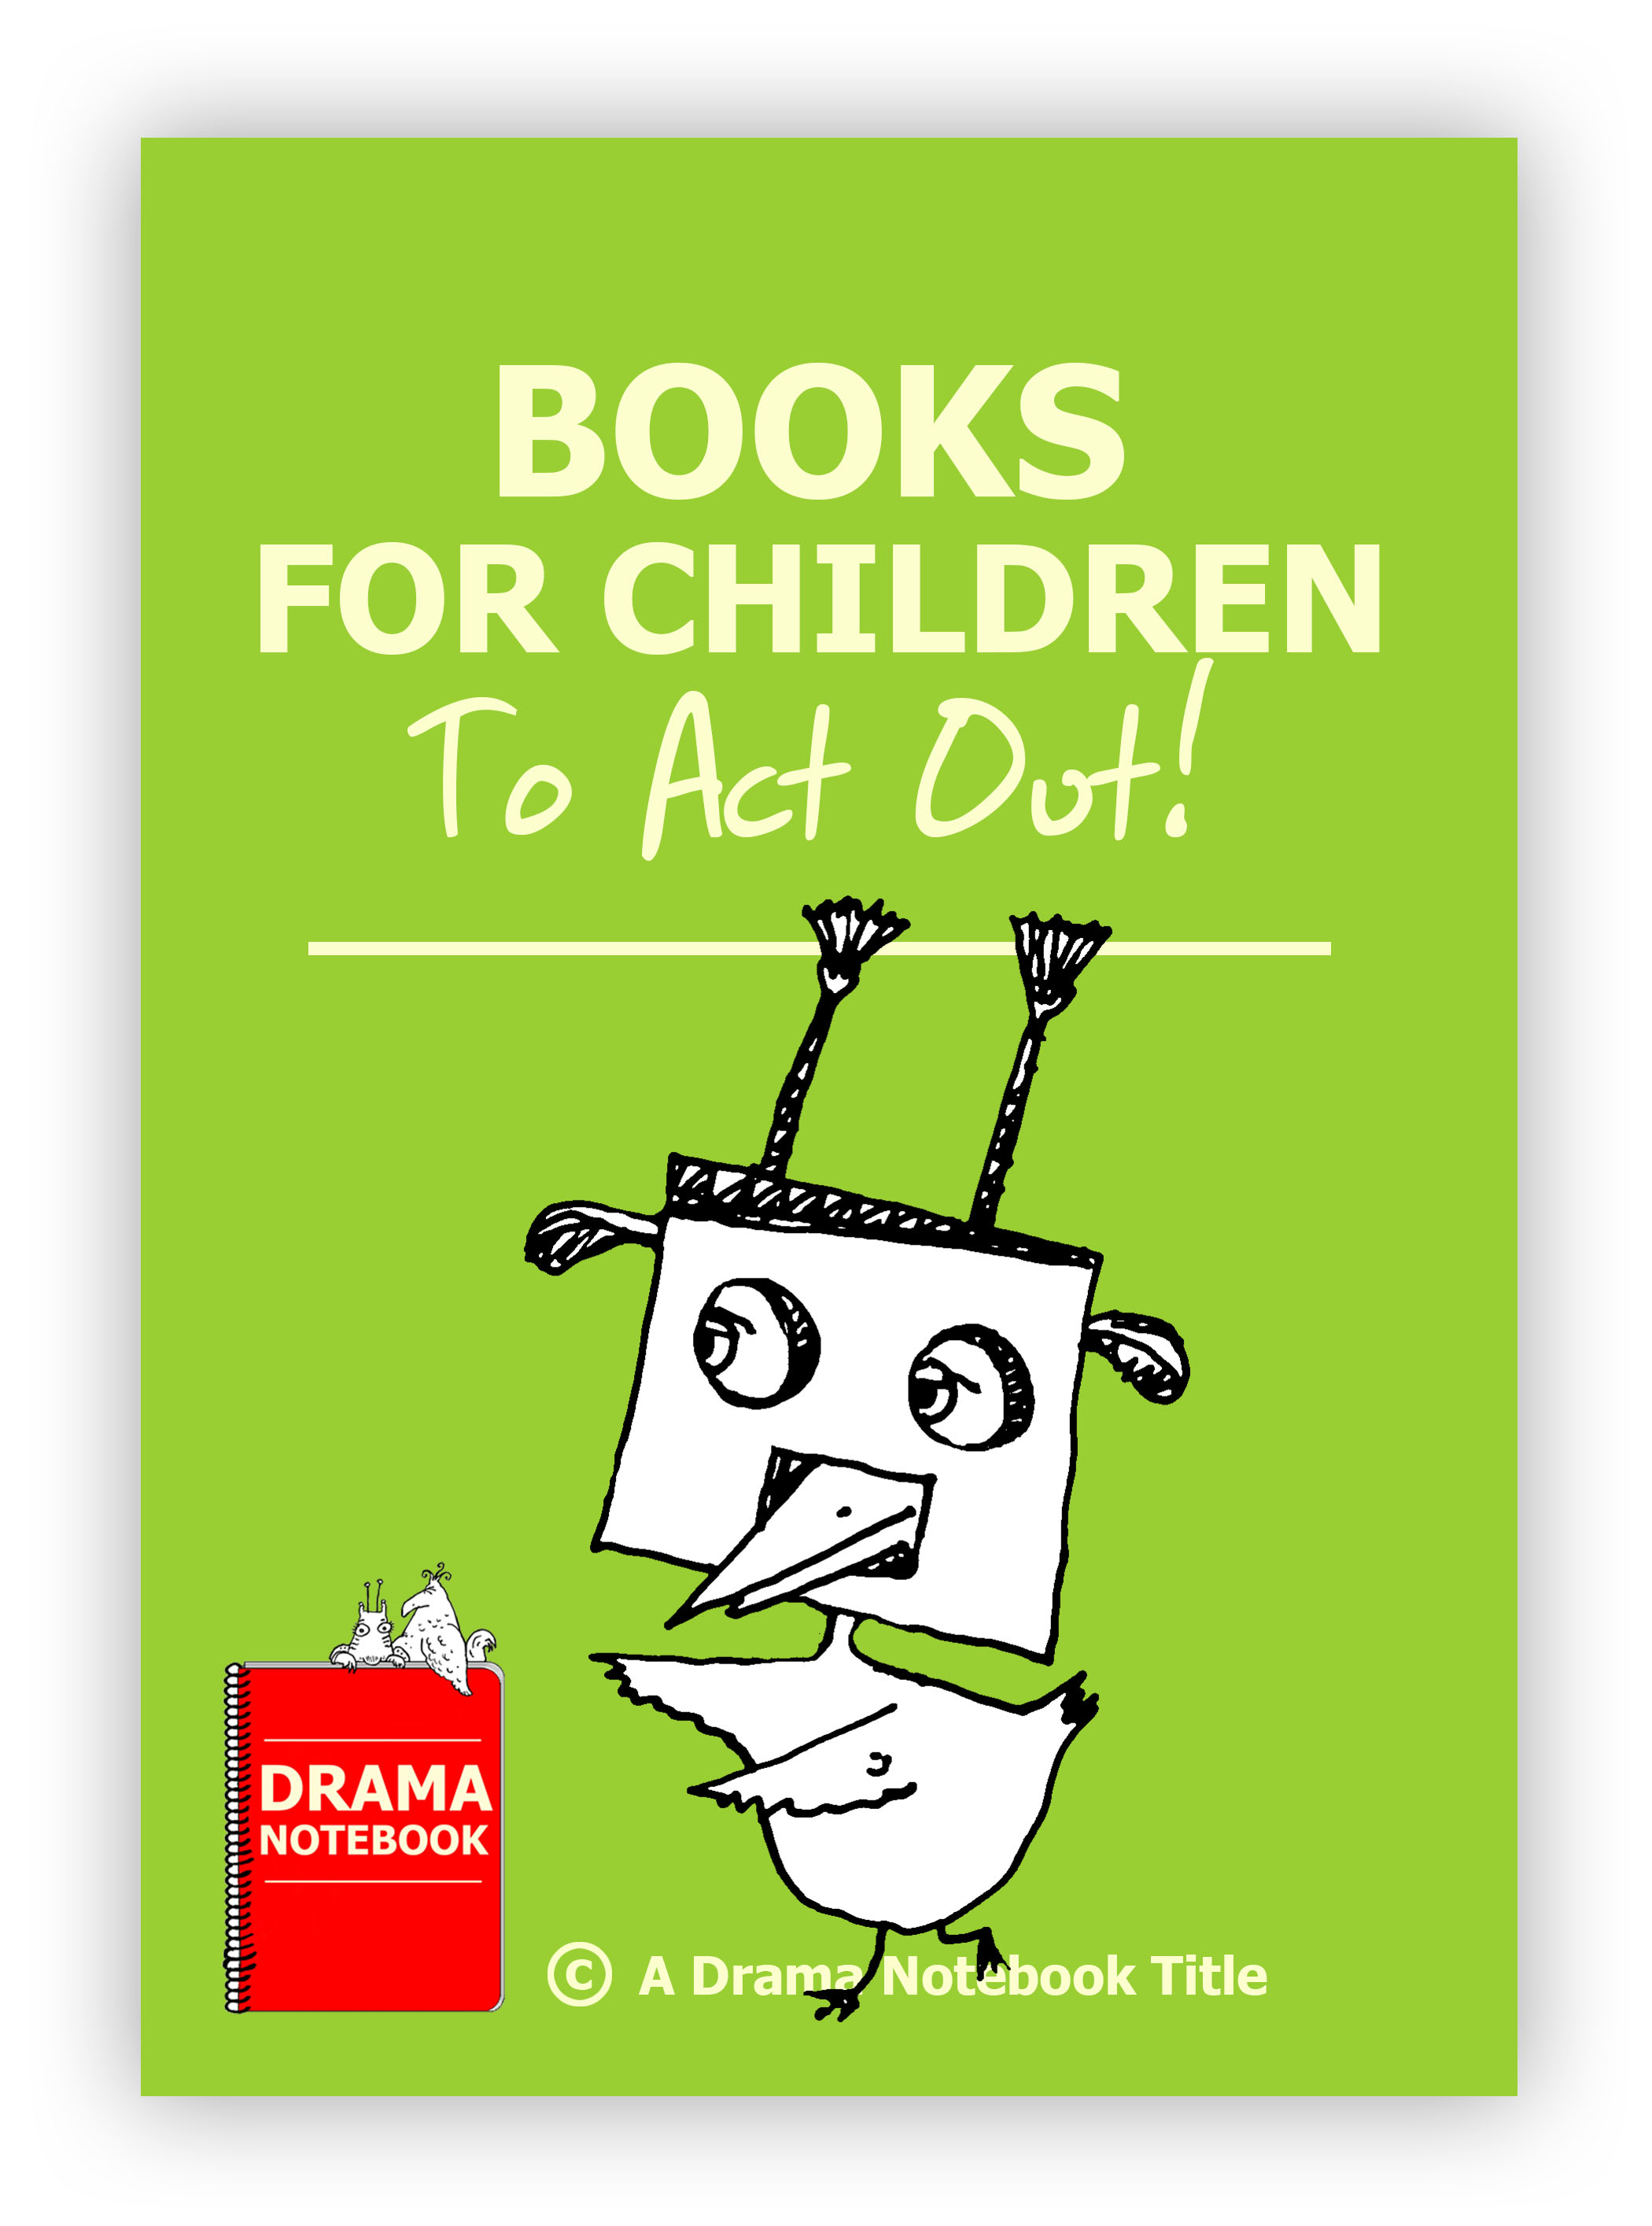 Books for Children to Act Out in Drama Class